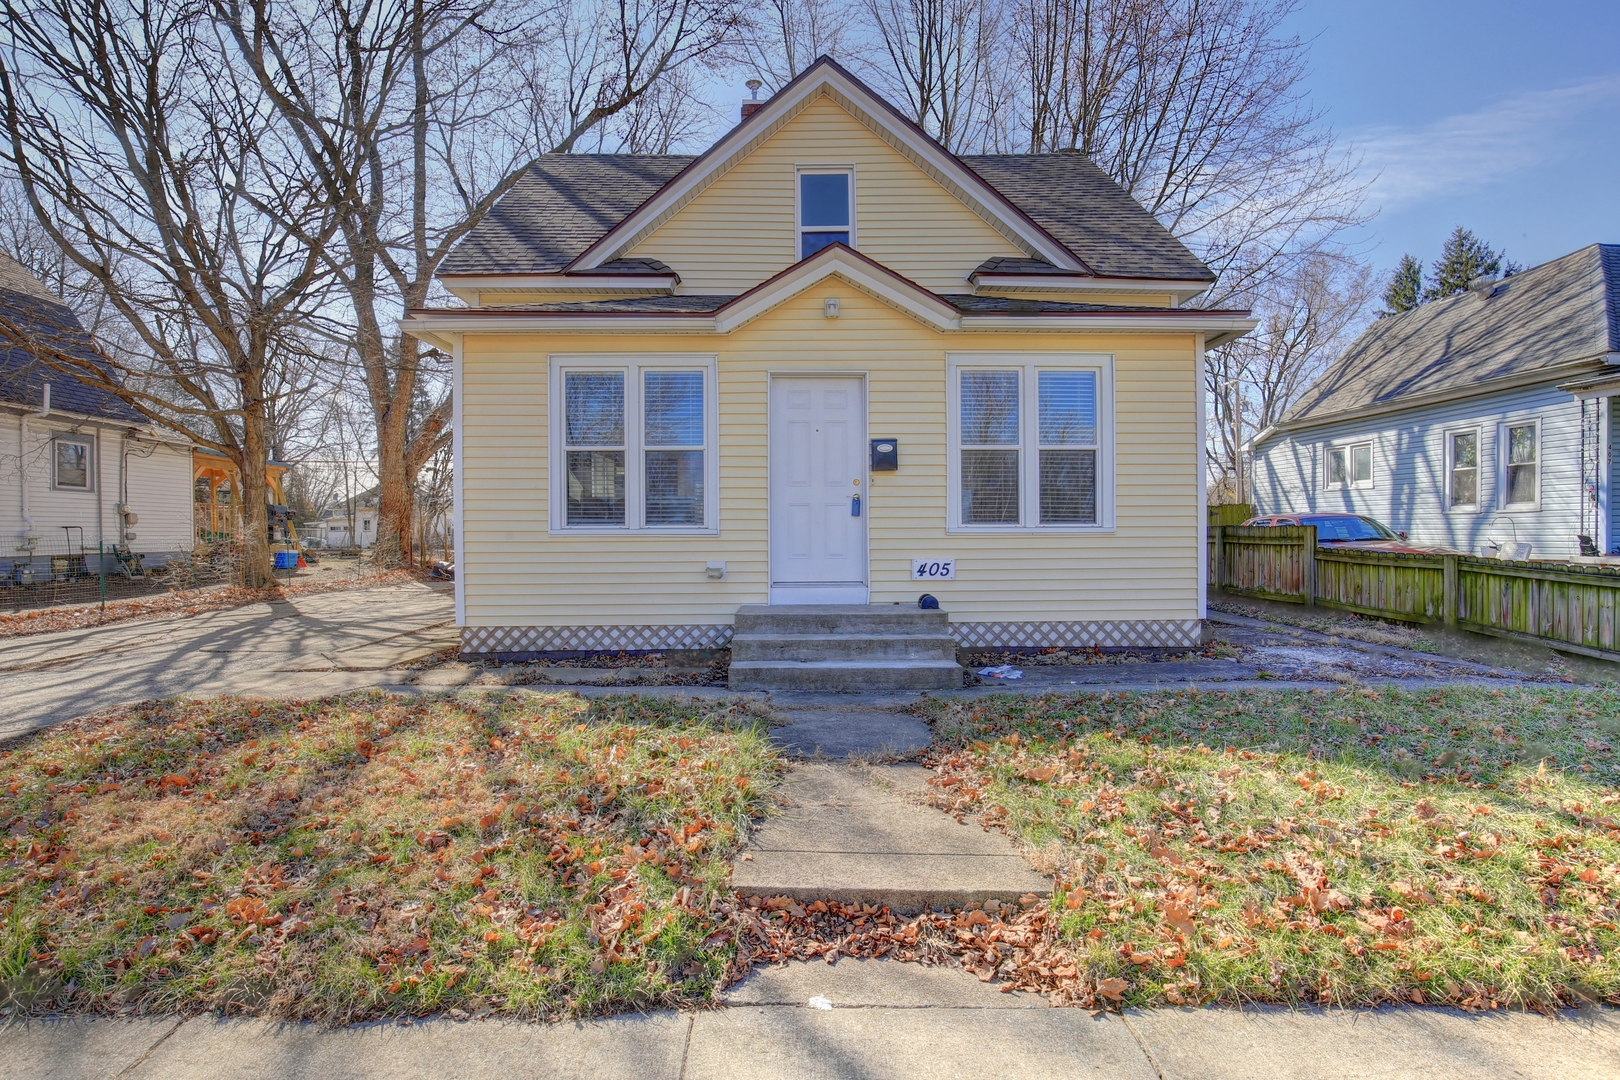 405 West Beardsley Avenue, Champaign in Champaign County, IL 61820 Home for Sale